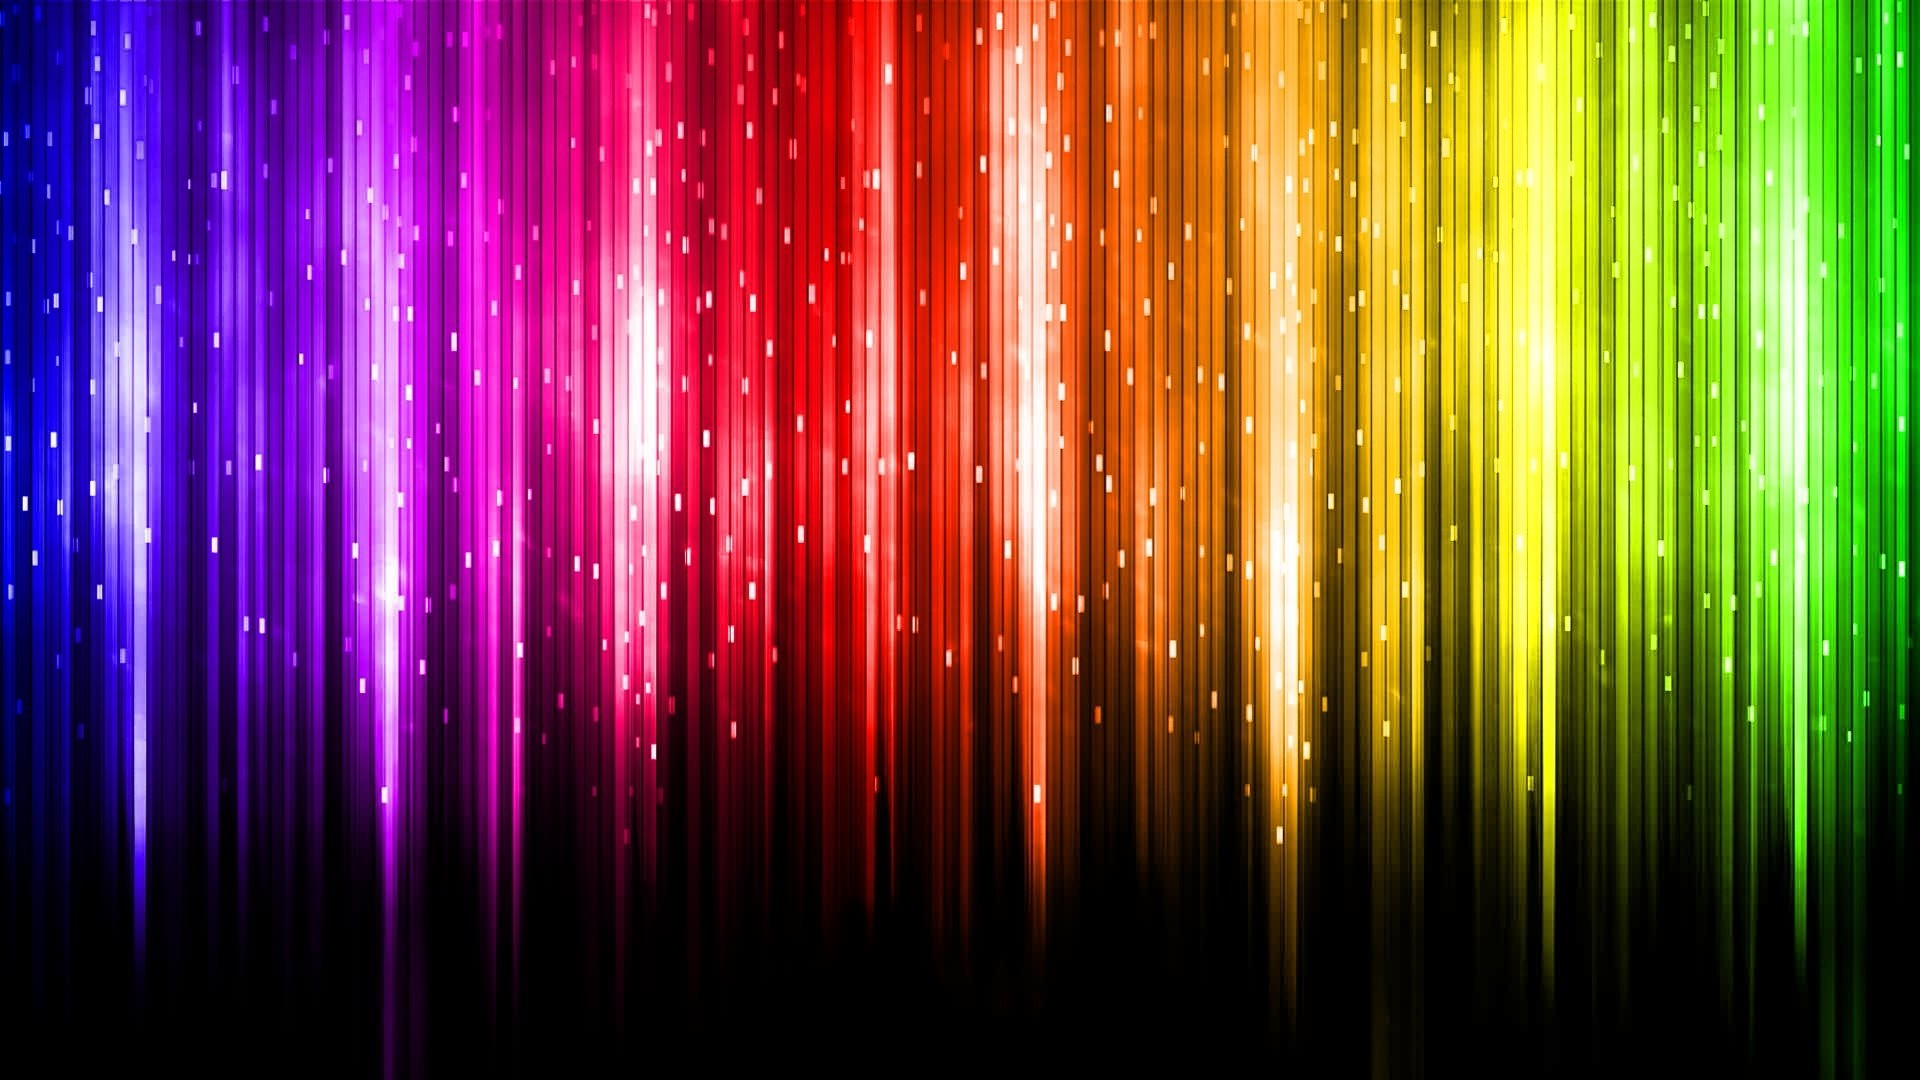 Colourful backgrounds 59 images - Colorful background hd ...